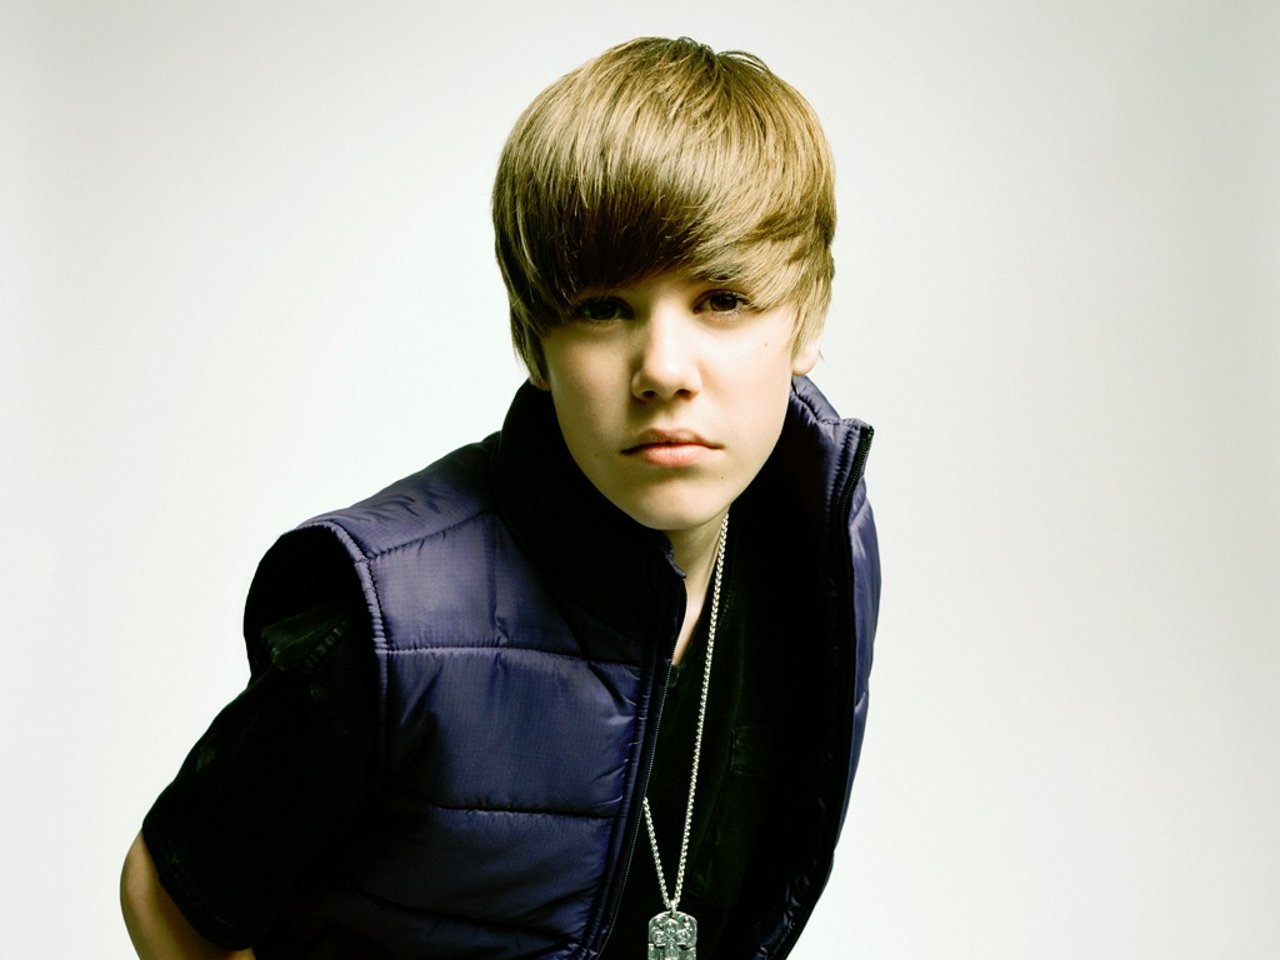 Justin Biber Photo Dwnld: Justin Bieber New HD Wallpapers 2012-2013